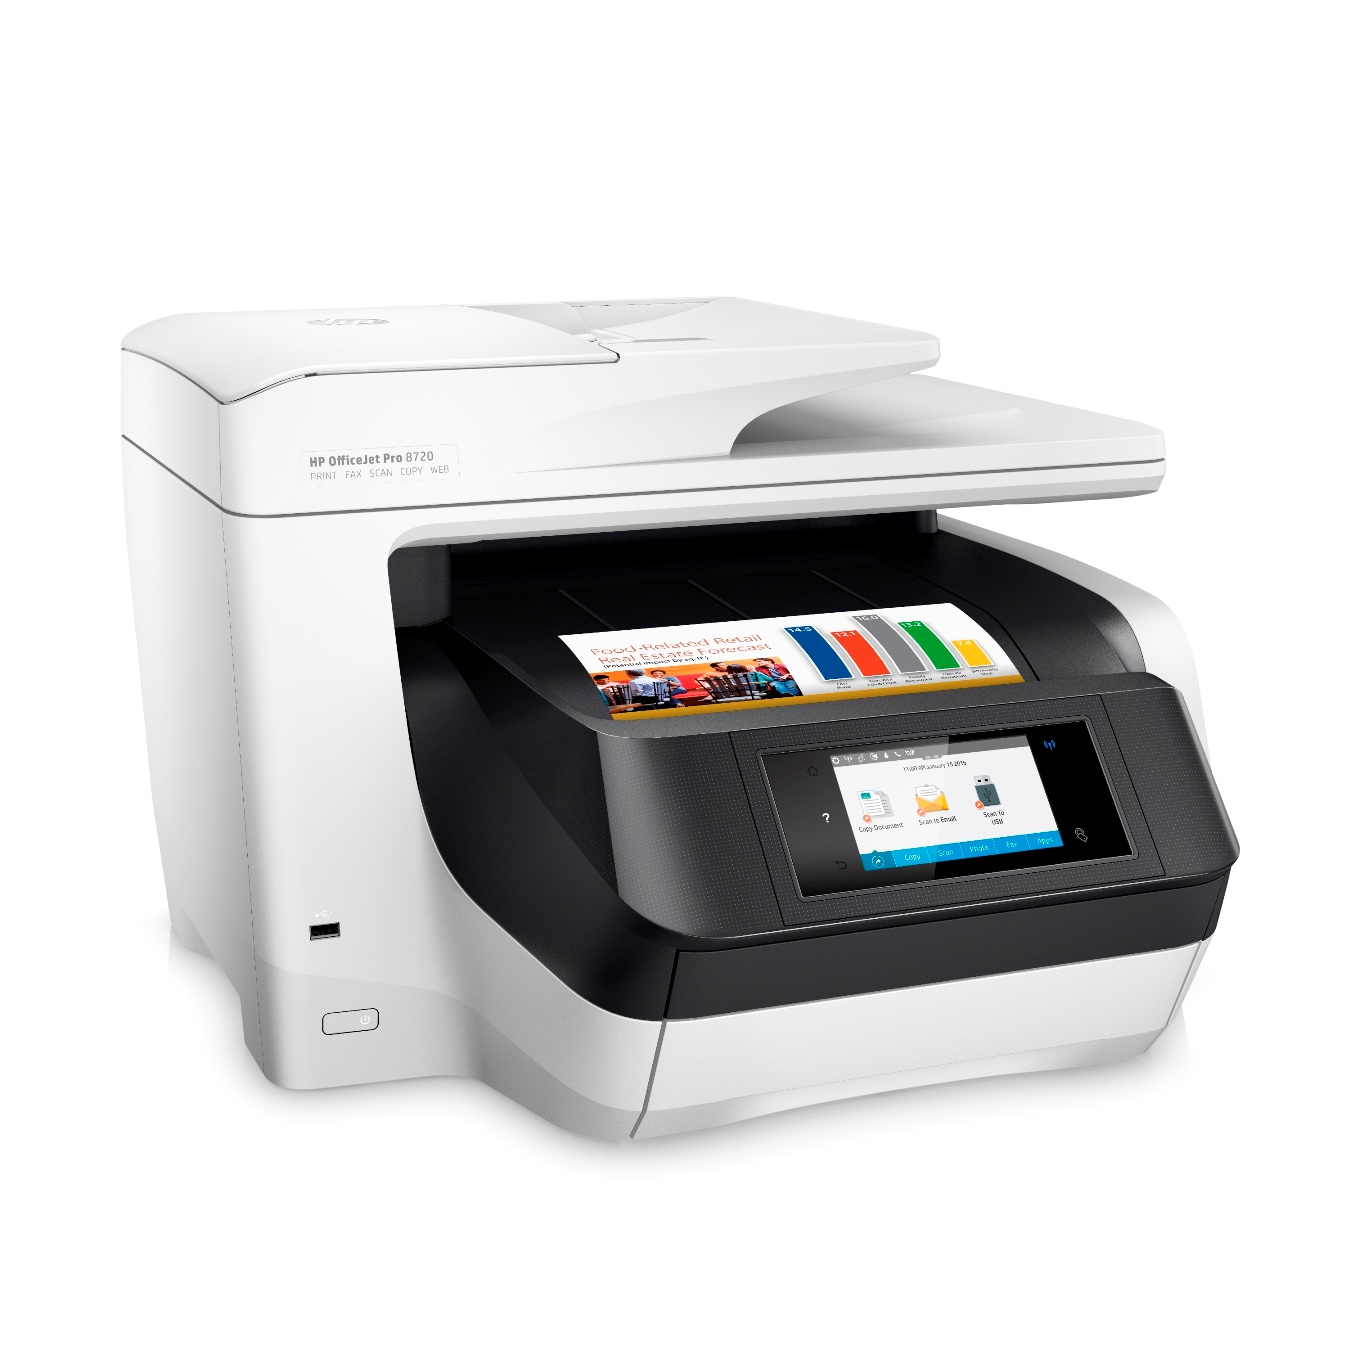 3-HP OfficeJet Pro 8720 All-in-One Printer